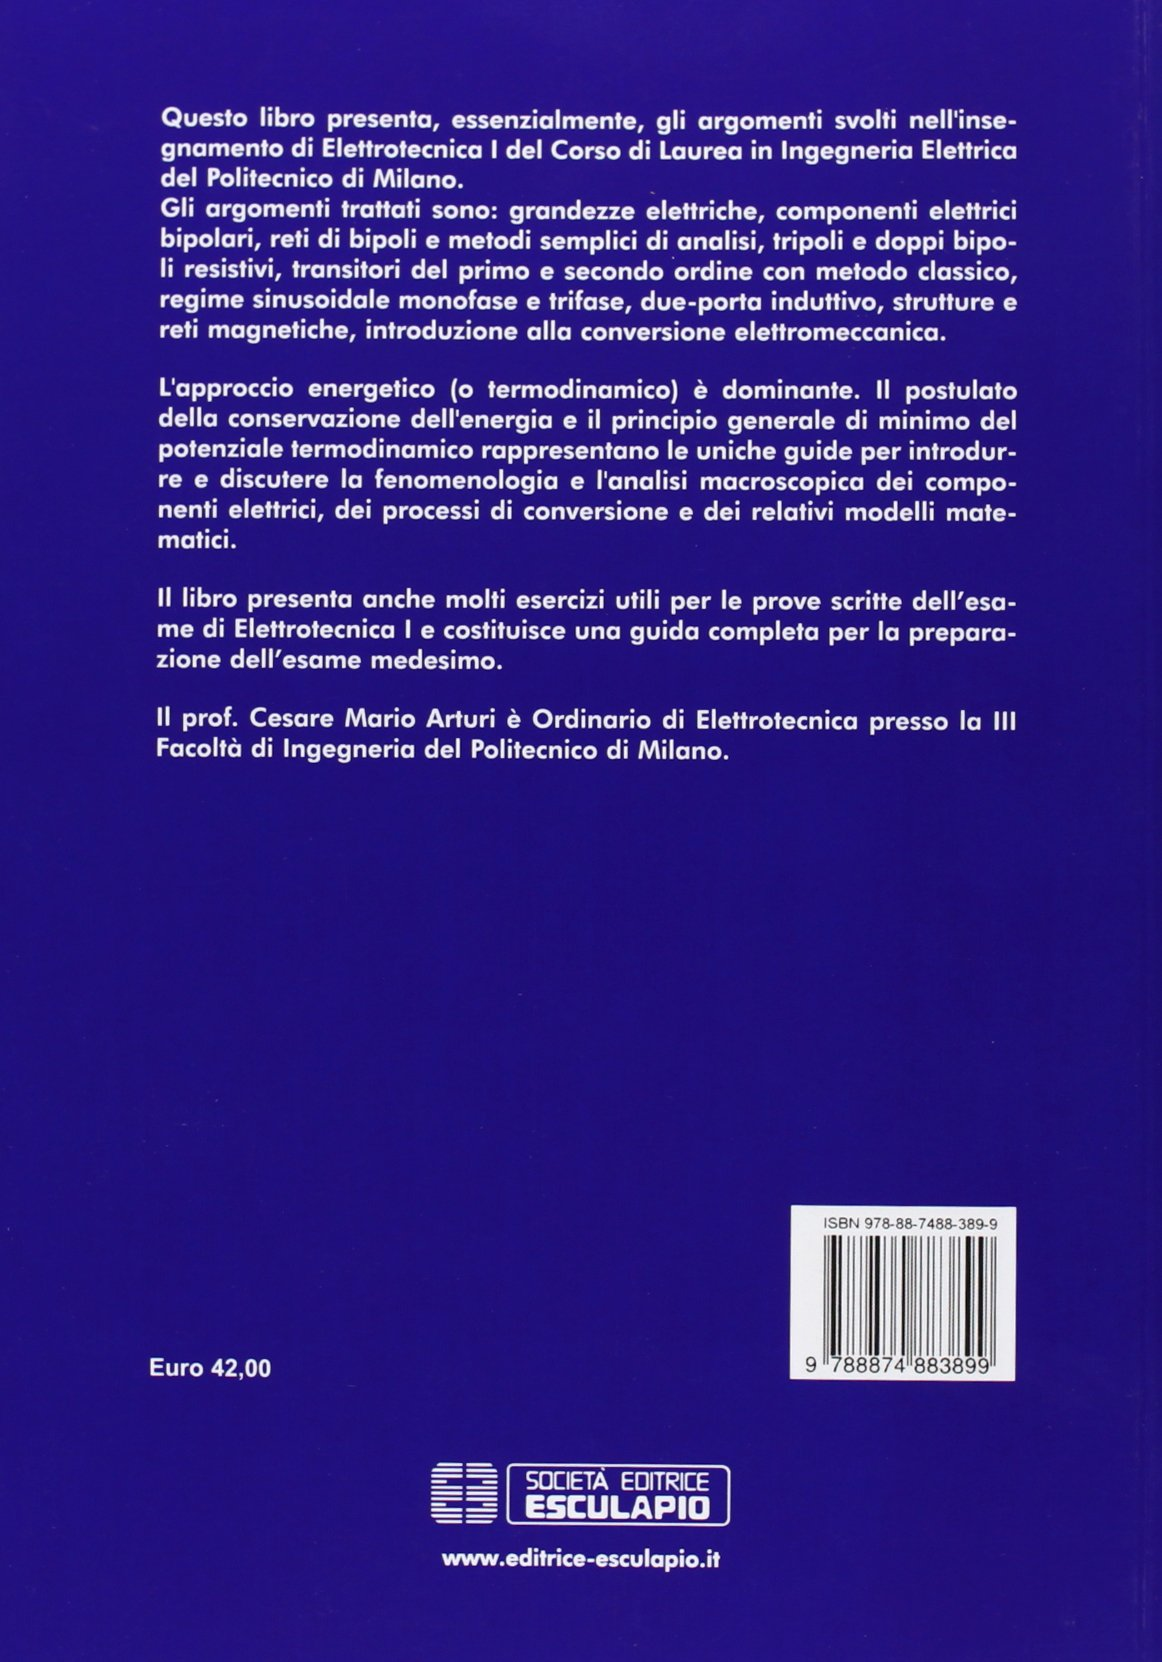 ELETTROTECNICA 1 ARTURI EPUB DOWNLOAD